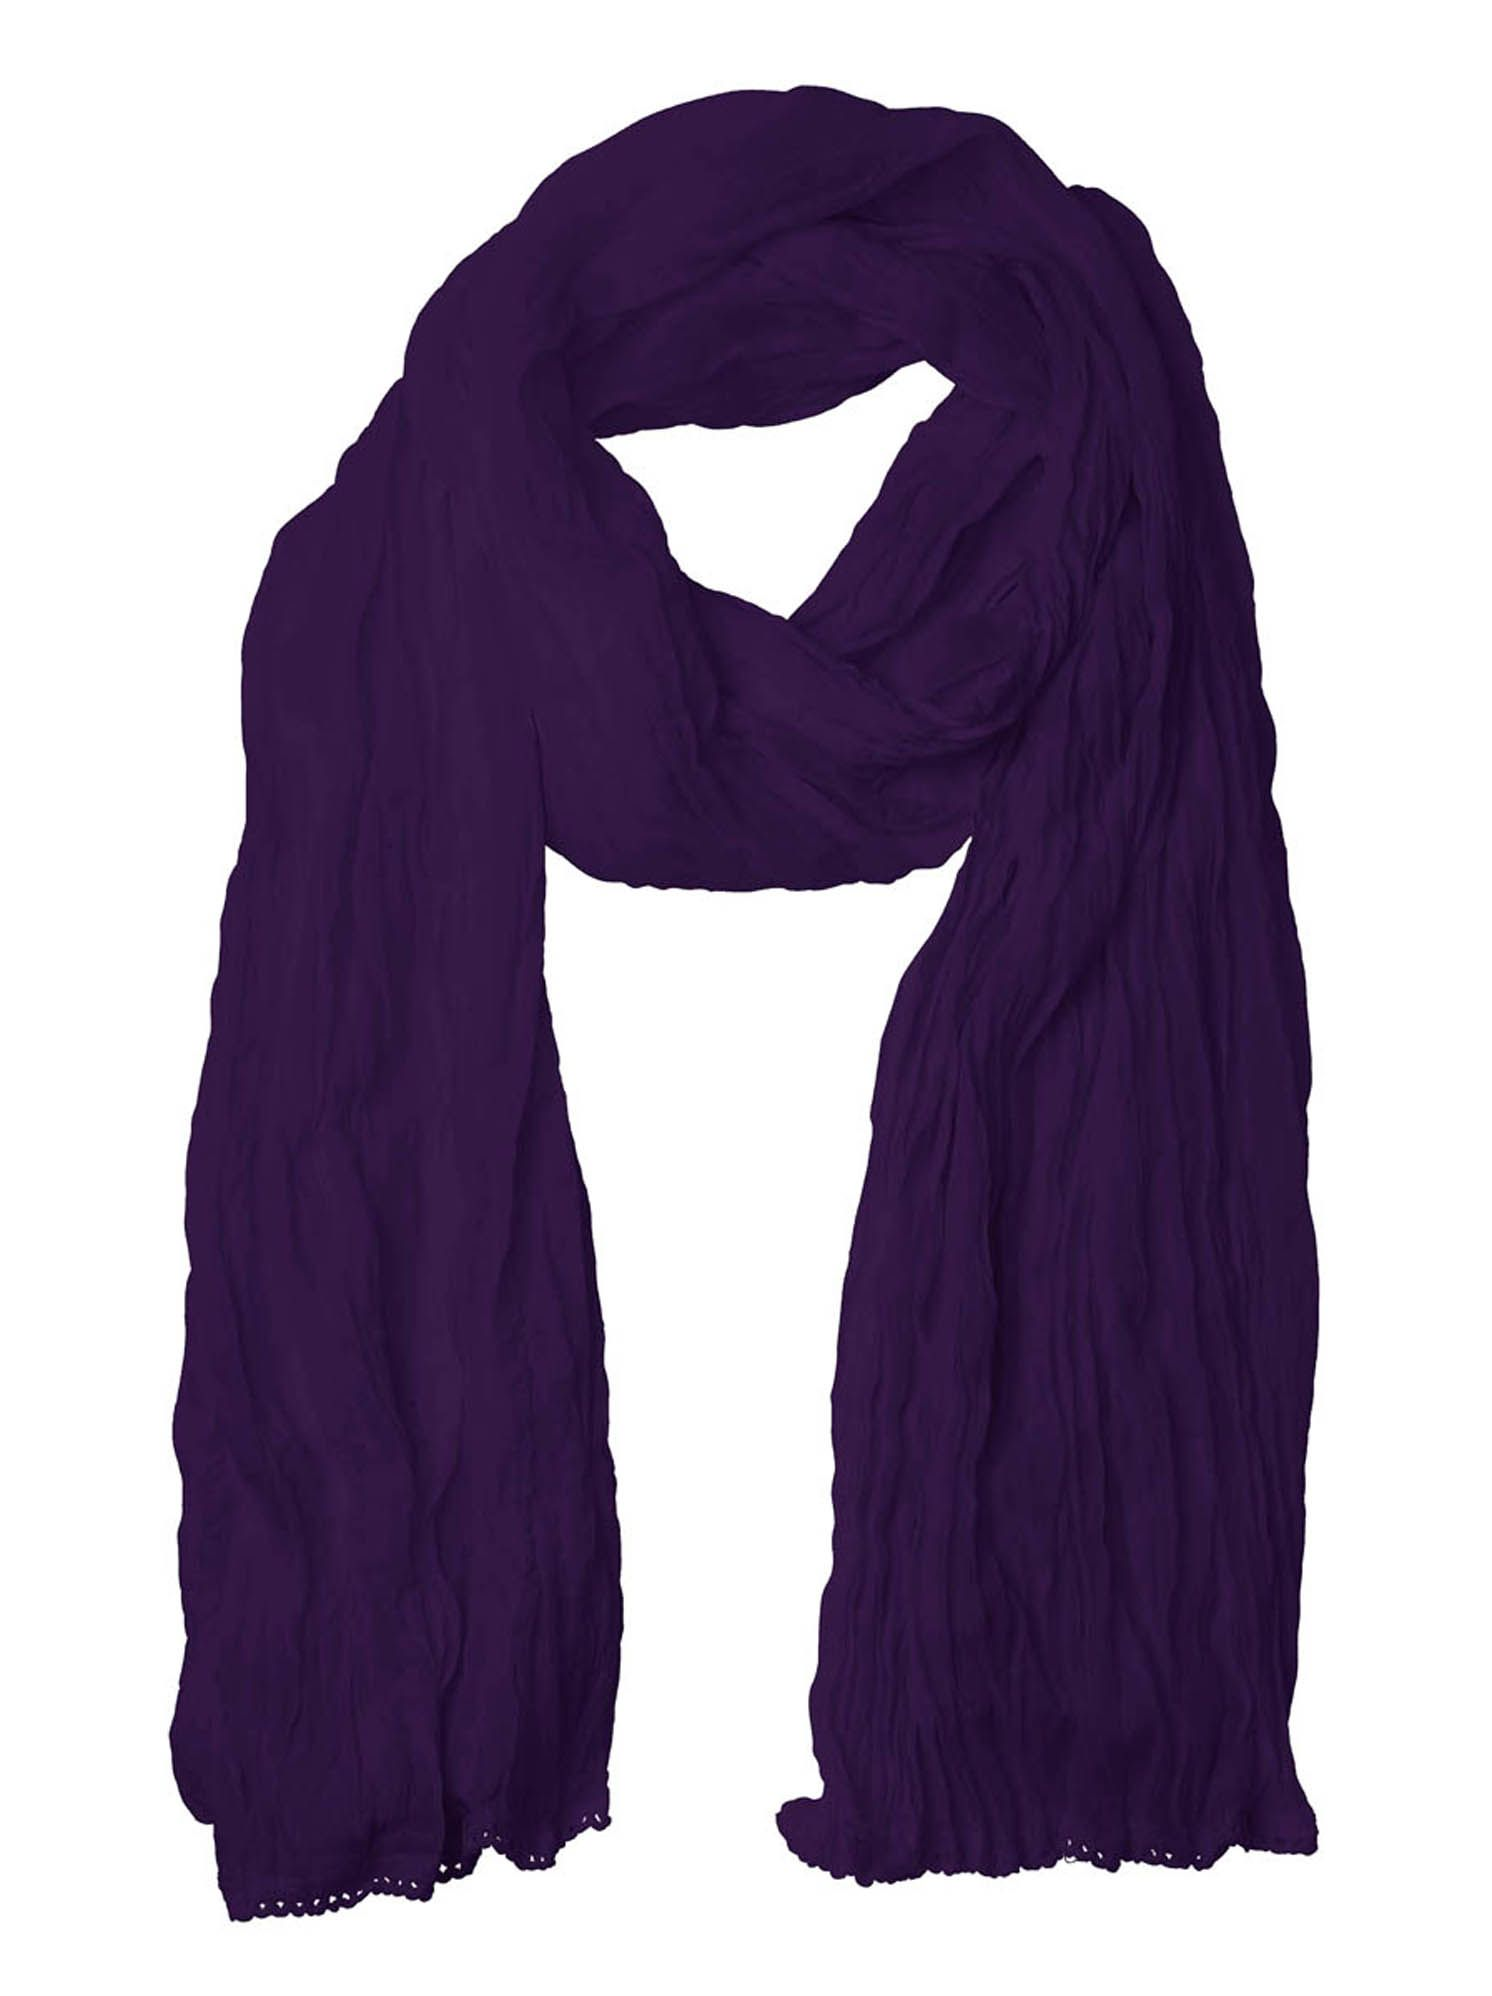 Stylish and trendy latest Dupattas, it looks on you Georges. #Gardenvareli #Brinjal Purple Dupatta. #Dupattas. The Best ever, Biggest and the most unique Online Shopping for # Dupattas. At The Best Brands on Gardenvareli.com with Smart and Lowest Price at Rs: 299/-